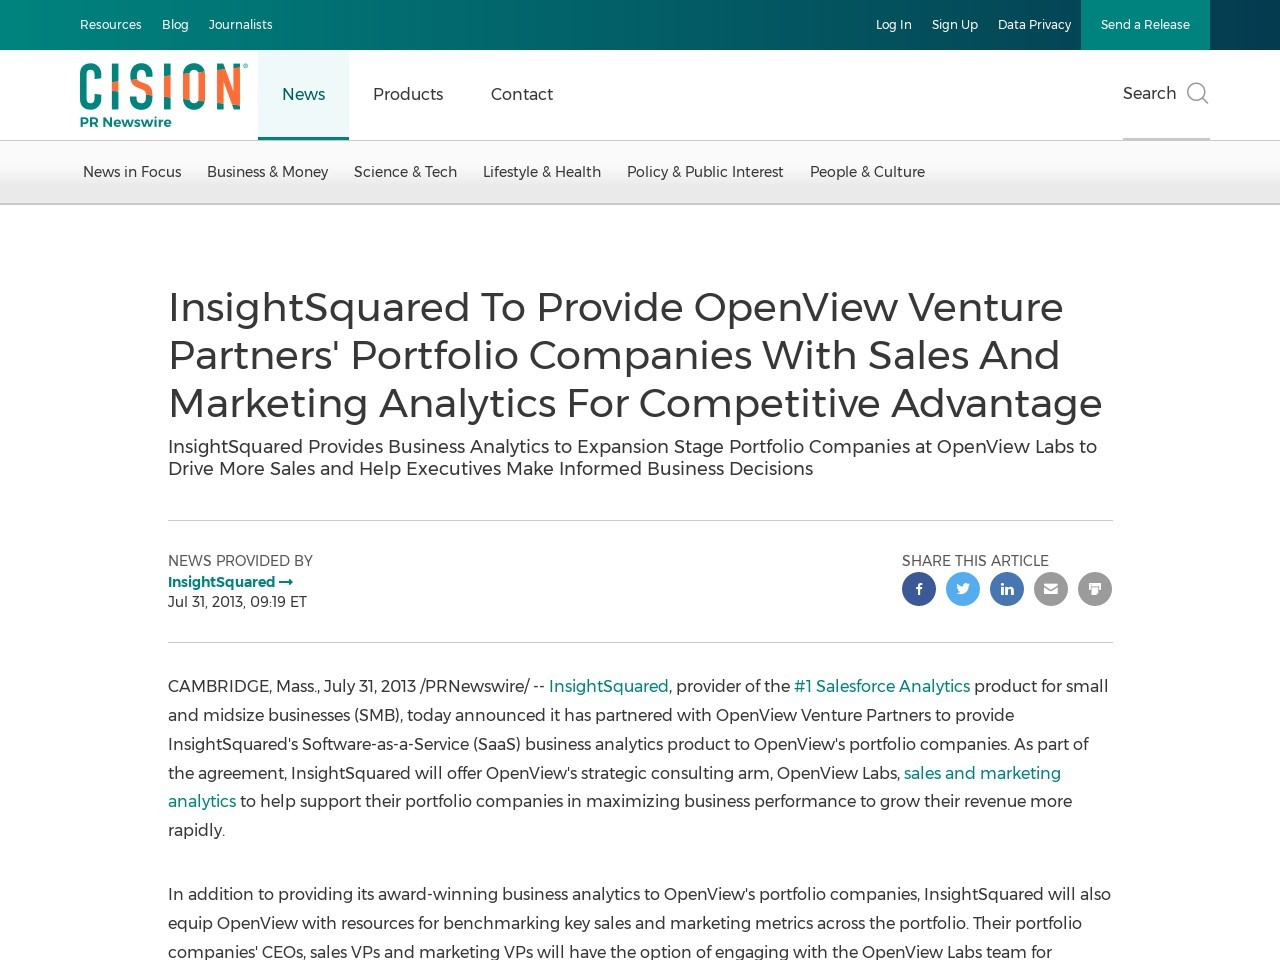 InsightSquared To Provide OpenView Venture Partners' Portfolio Companies …